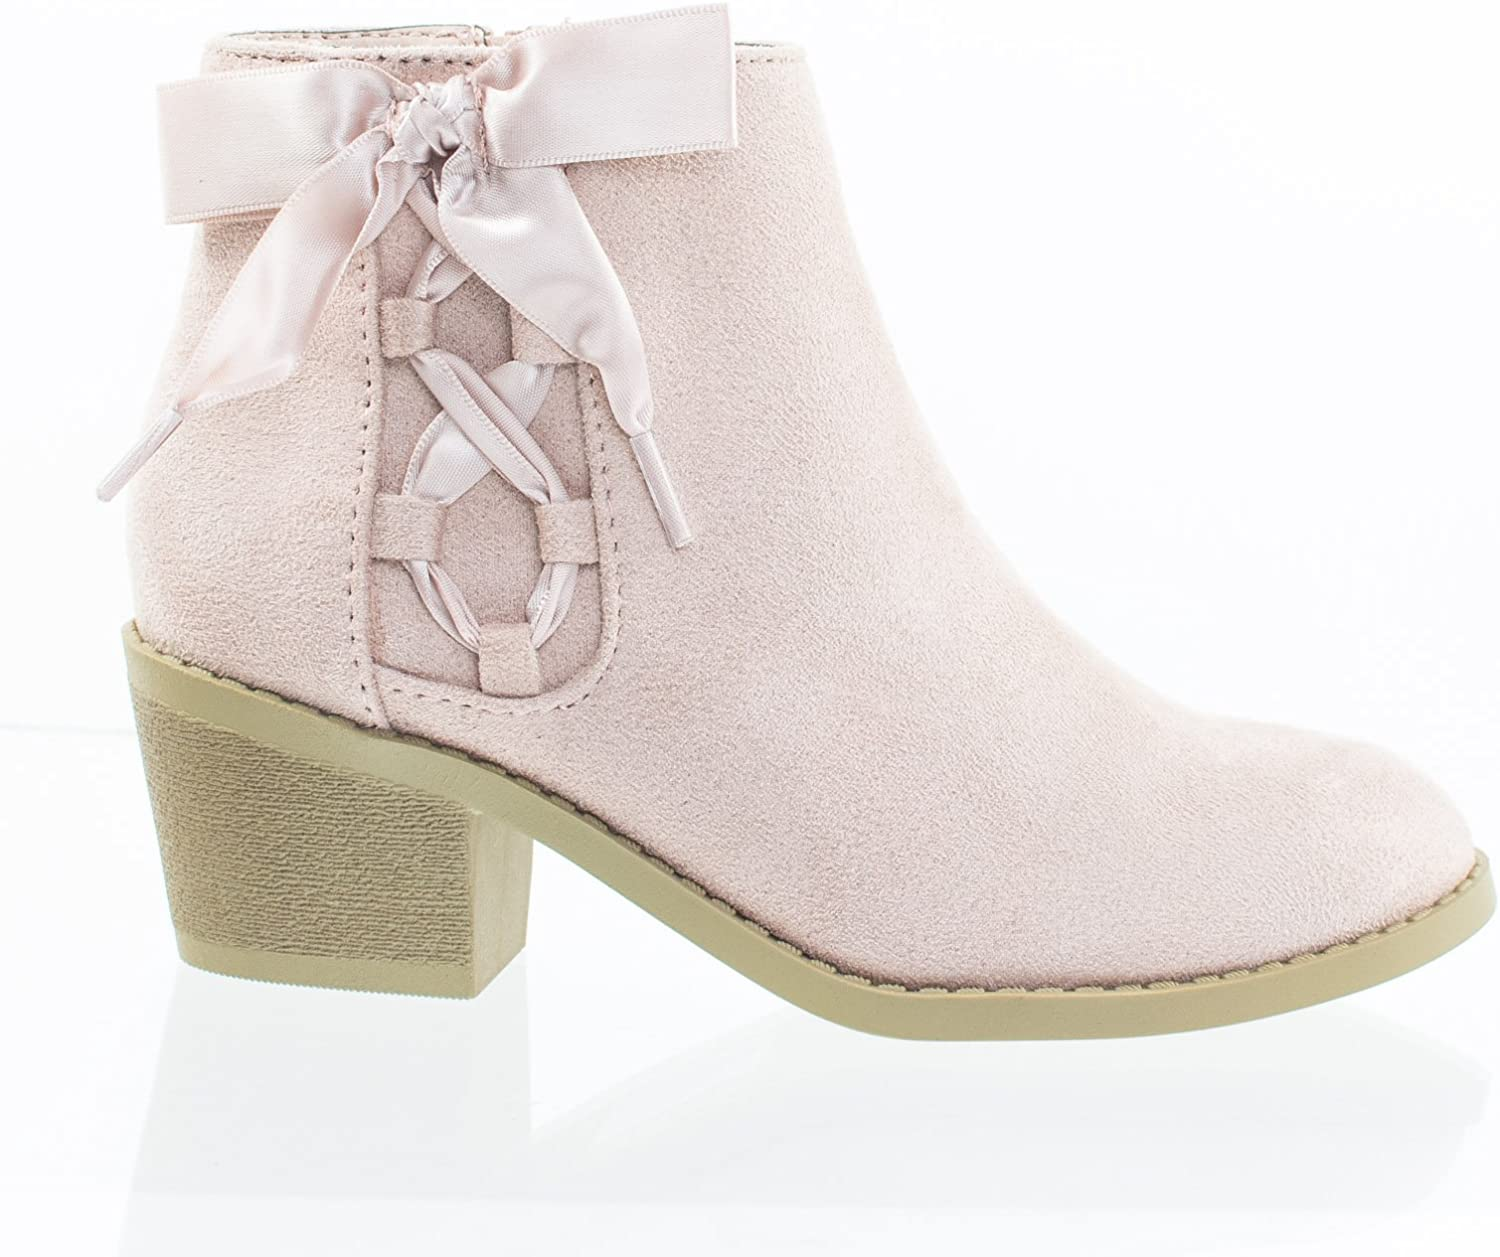 Girls Toddler Grey Bow Suede Ankle Boutique Chelsea Boots Kids Children Shoes